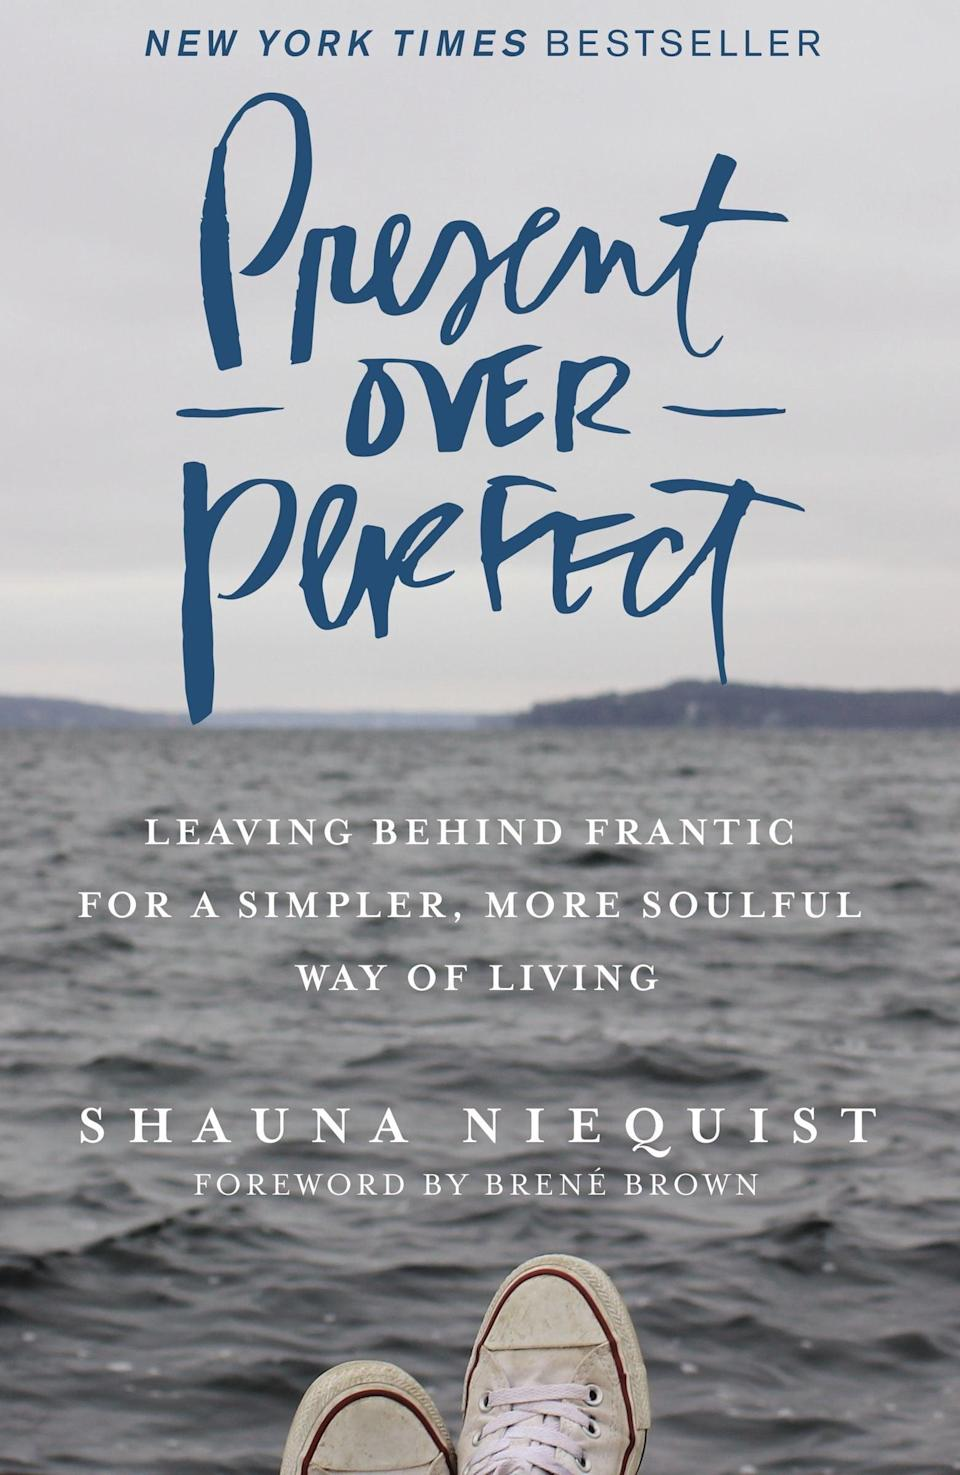 """<p><a href=""""https://www.shaunaniequist.com"""" class=""""link rapid-noclick-resp"""" rel=""""nofollow noopener"""" target=""""_blank"""" data-ylk=""""slk:Shauna Niequist"""">Shauna Niequist</a> is steadily becoming a leader in the field of inspirational and spiritual living. Her book <strong><span>Present Over Perfect</span></strong> not only explores her own personal journey through slowing down but also provides valuable advice to incorporate a slower, more meaningful pace in your own daily life. </p>"""